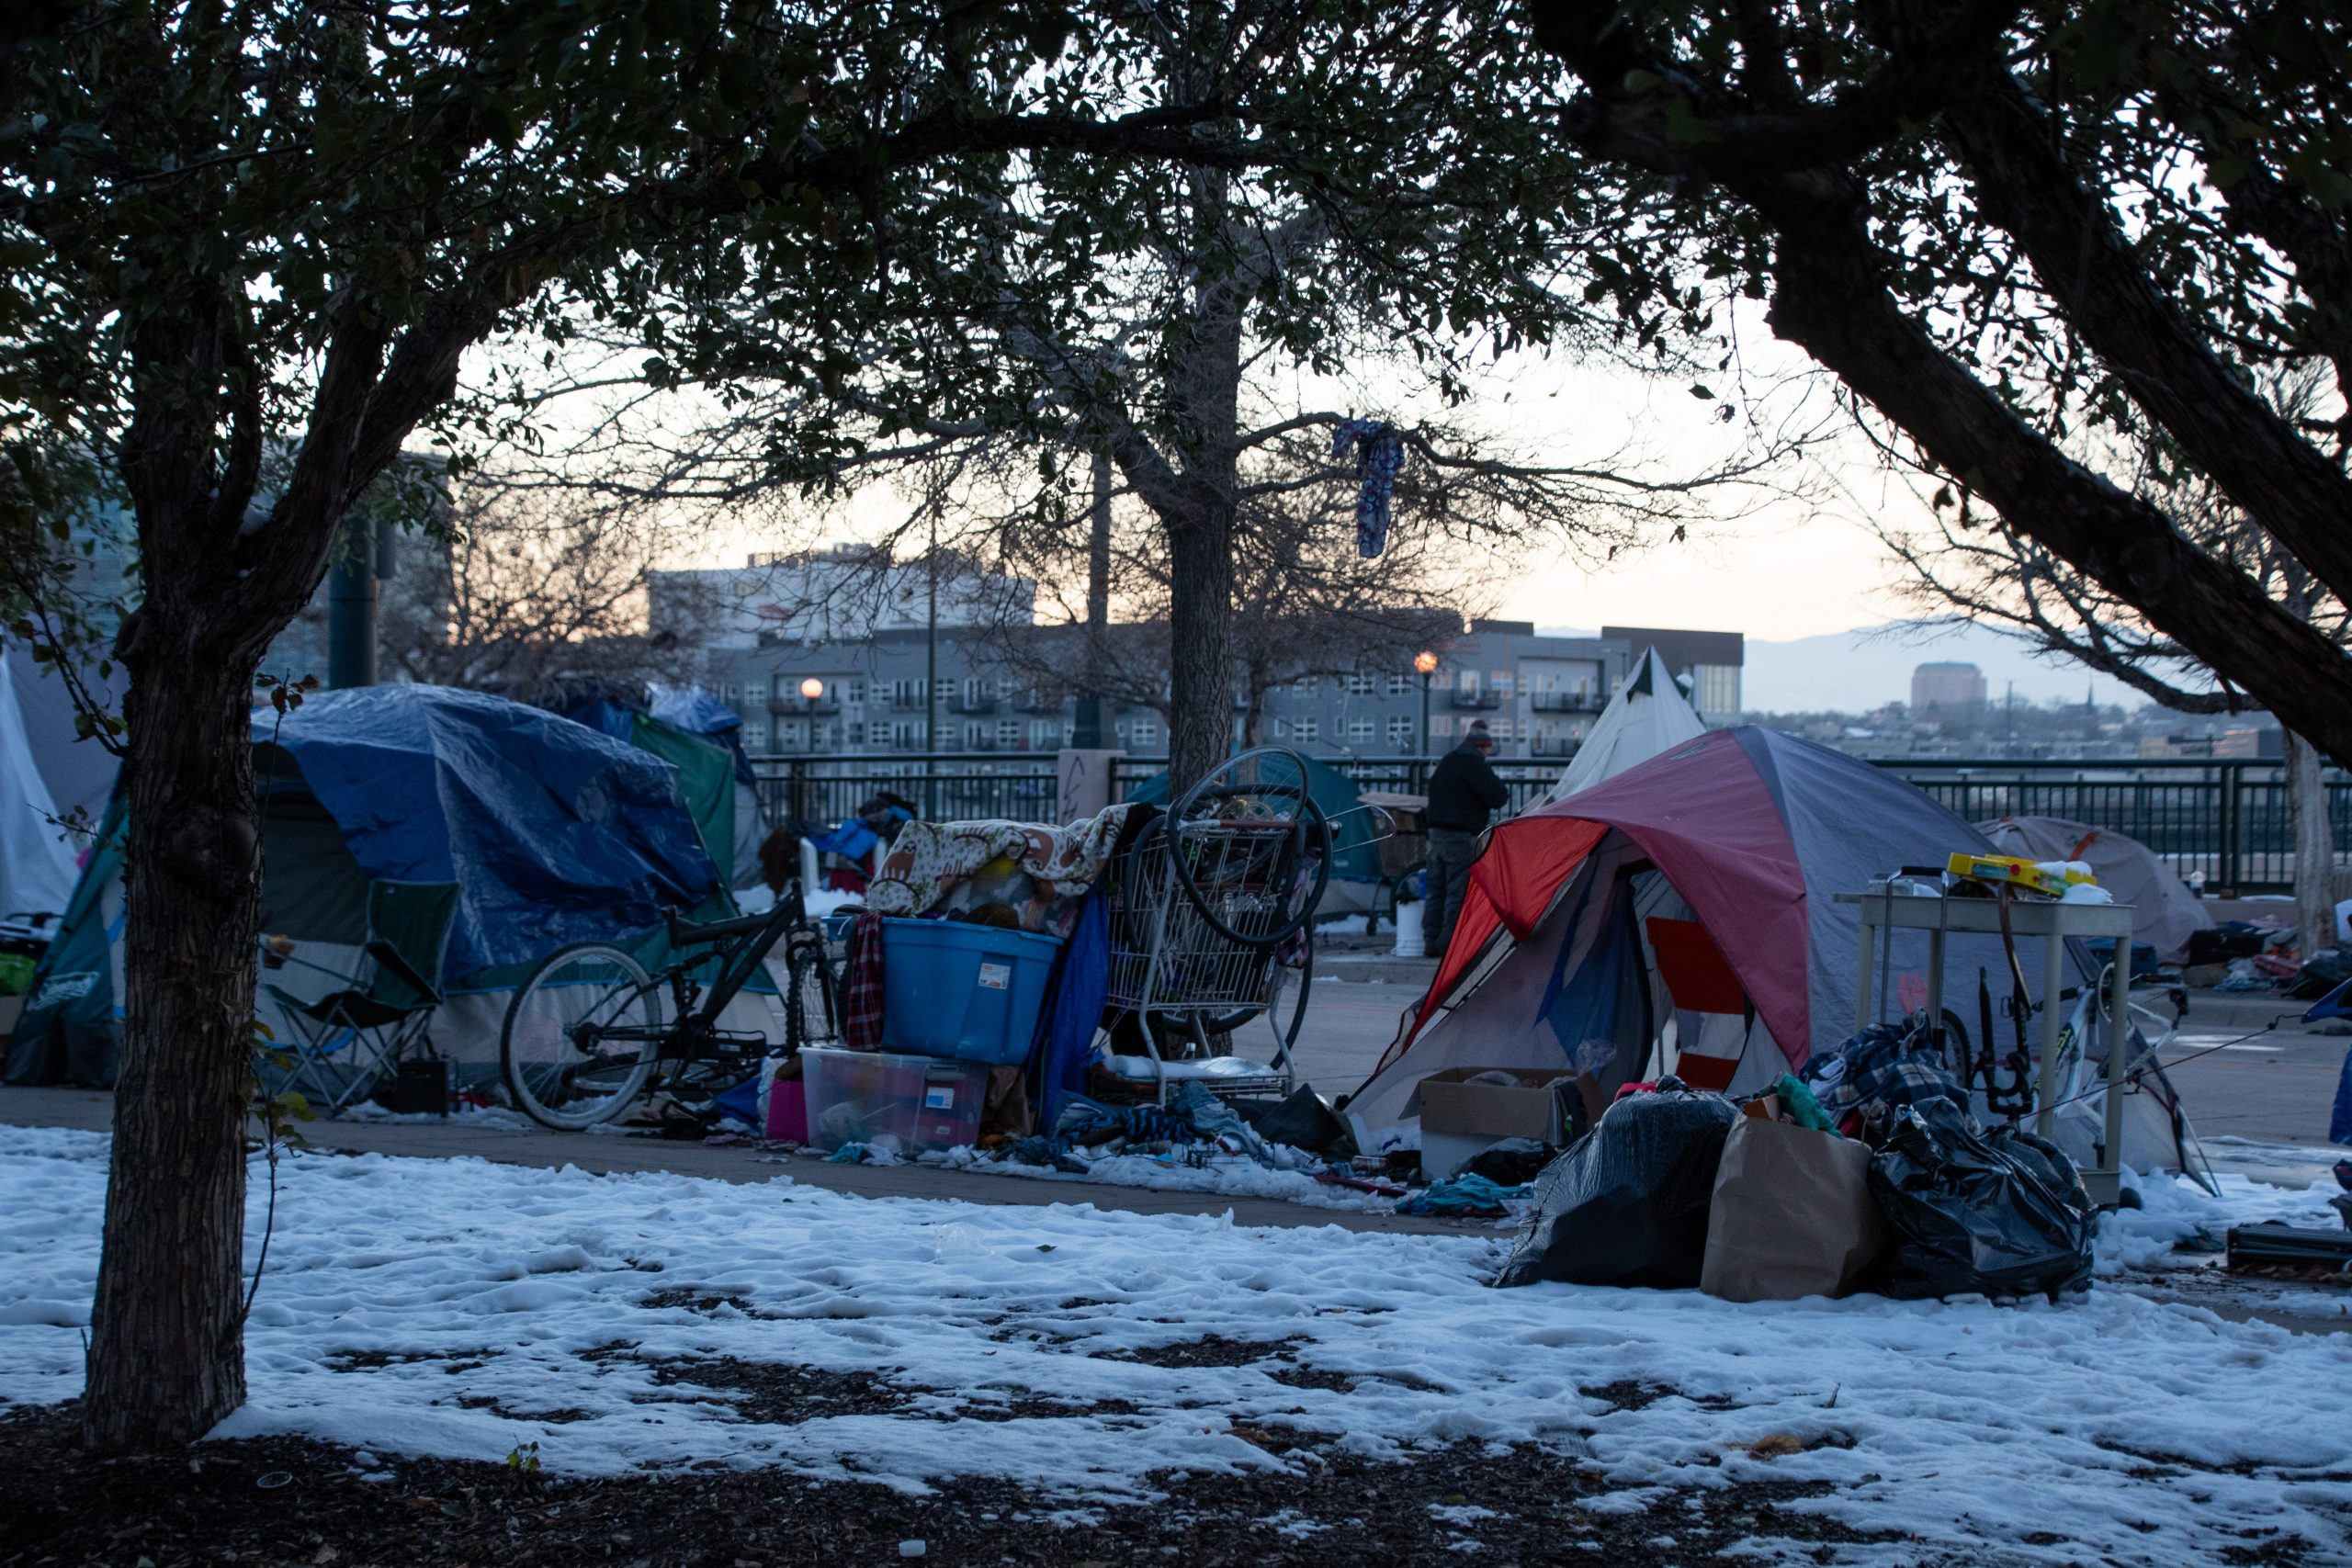 As winter storm descends on the Front Range, community groups and Denver officials ramp up homeless outreach efforts